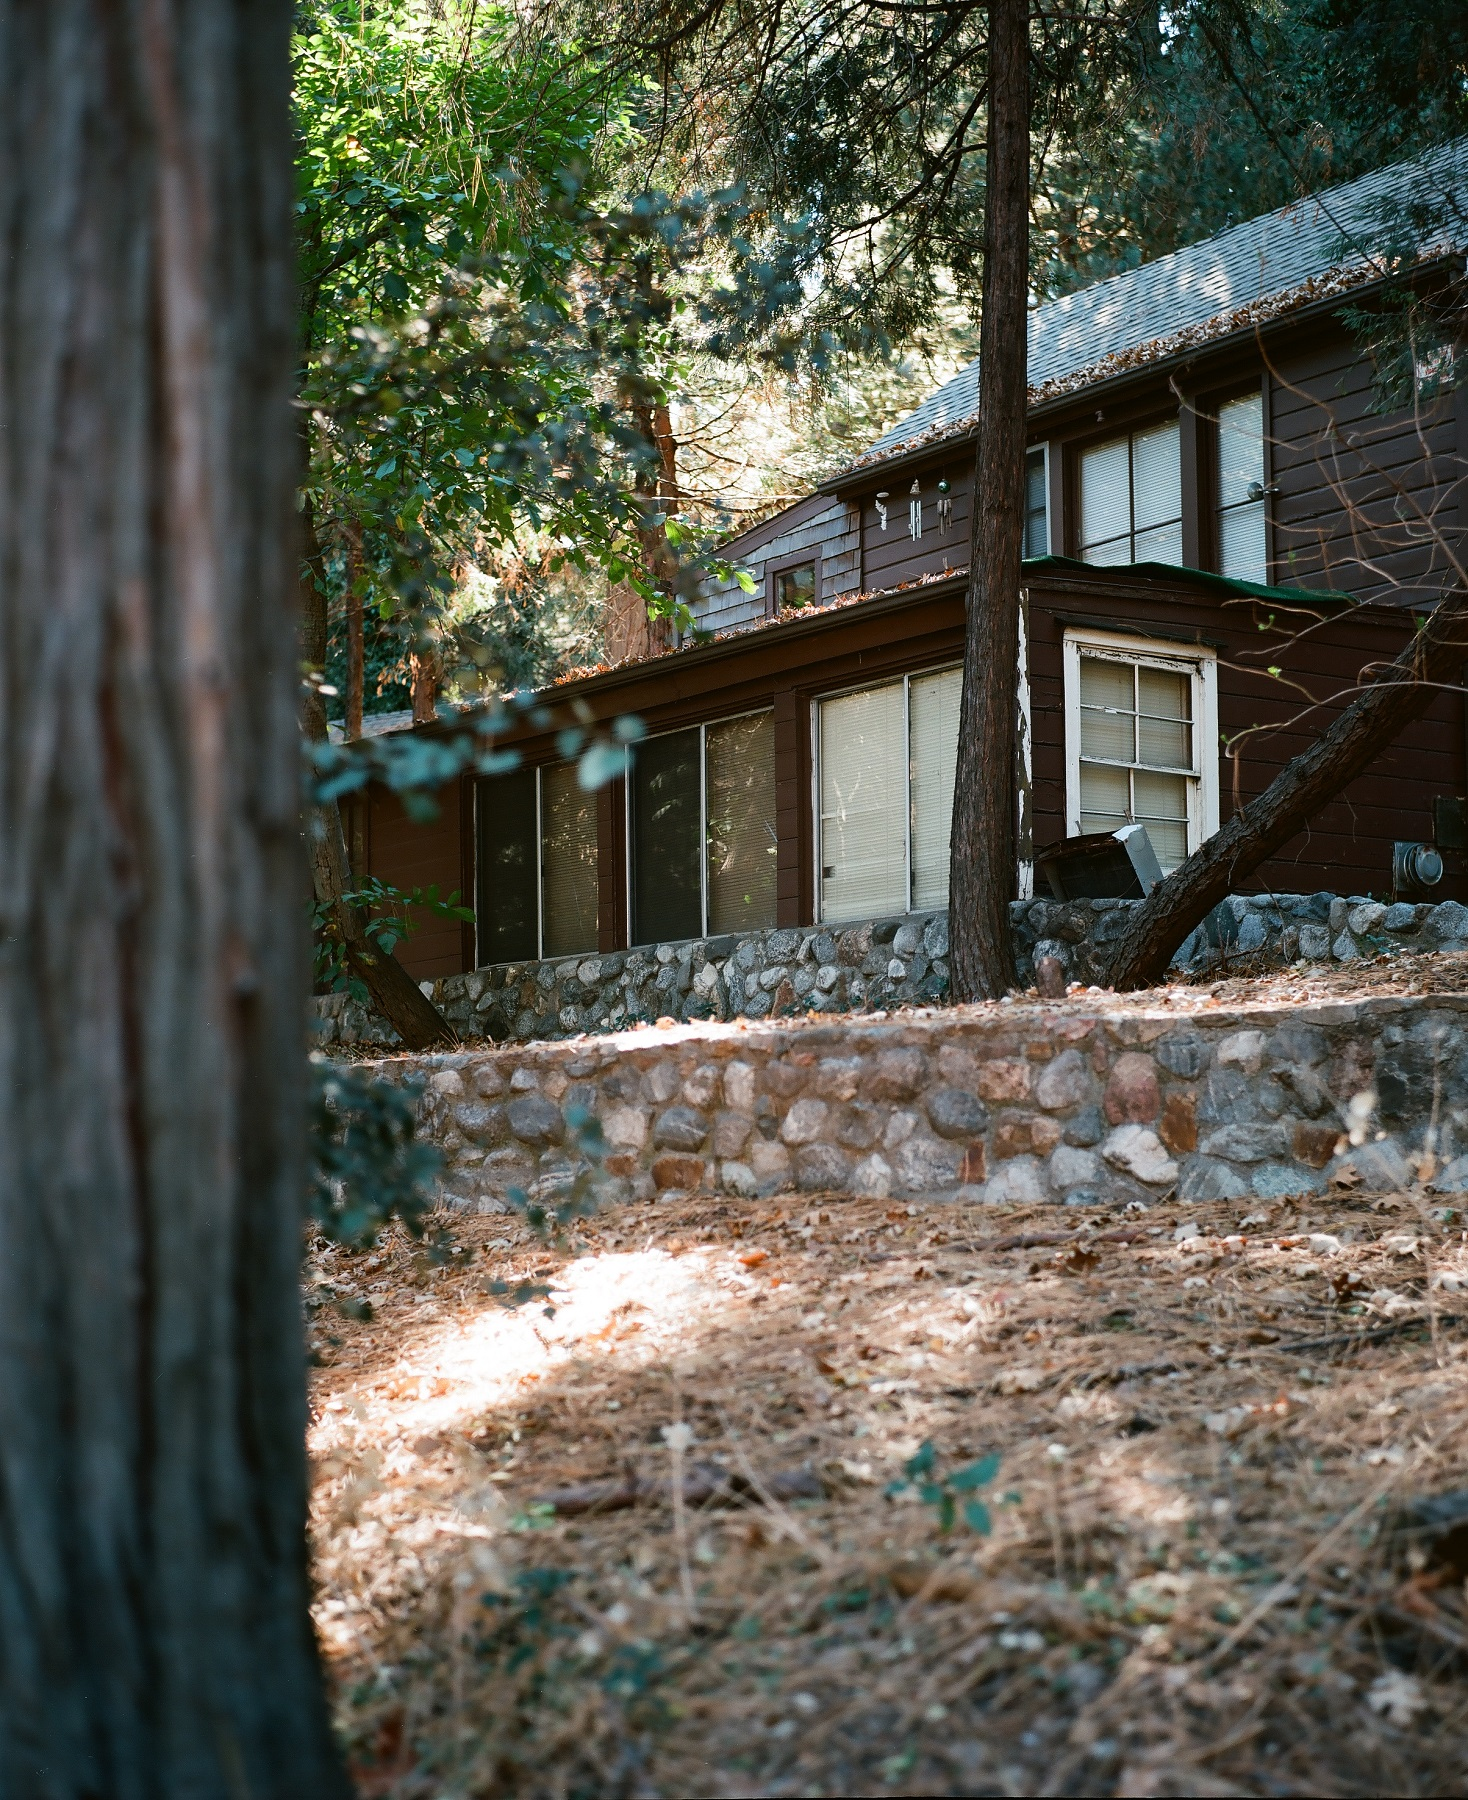 Crestline, California_Mamiya Super 23, 3.5f=100m_Kyle Everett Smith_15.jpg